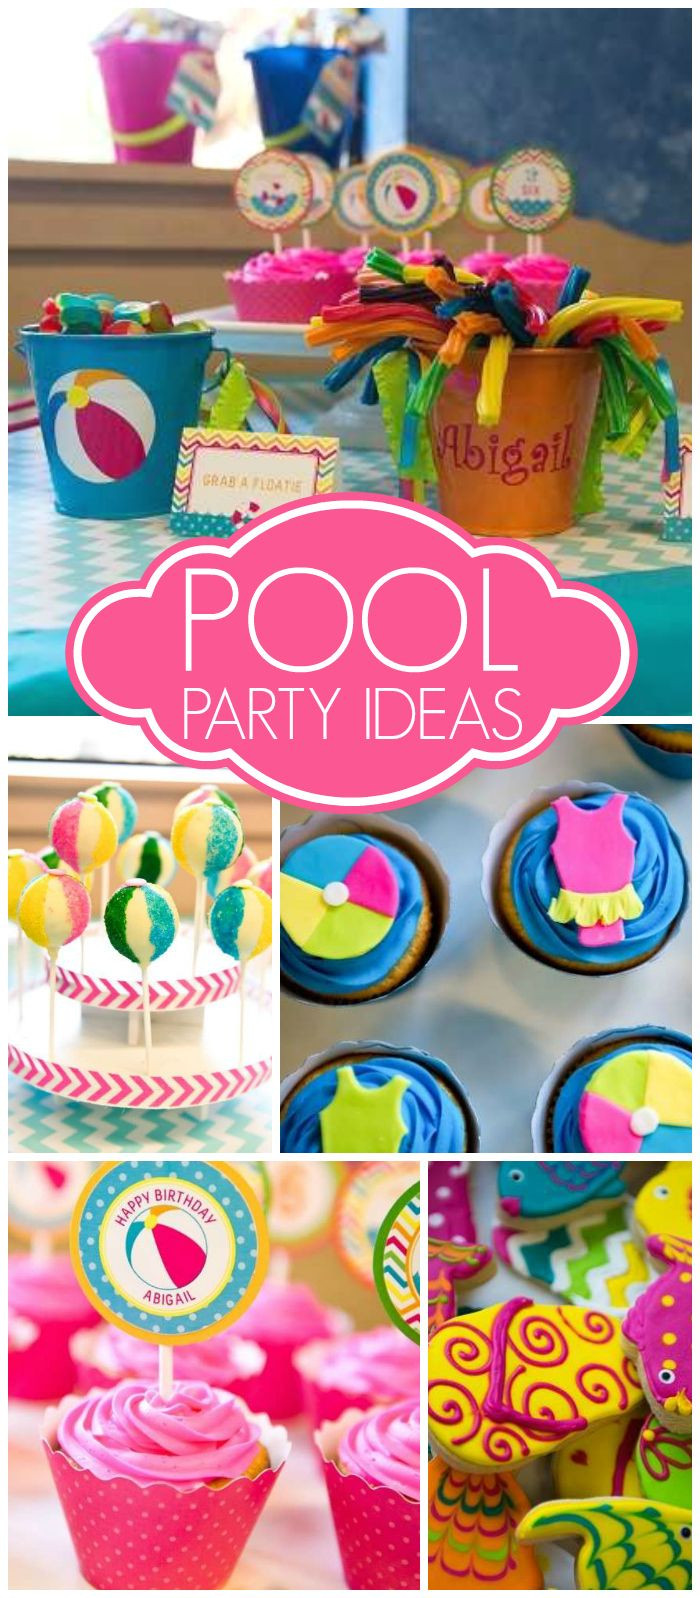 Pool Party Ideas For Girls  Love this bright and cheery hot pink and turquoise pool